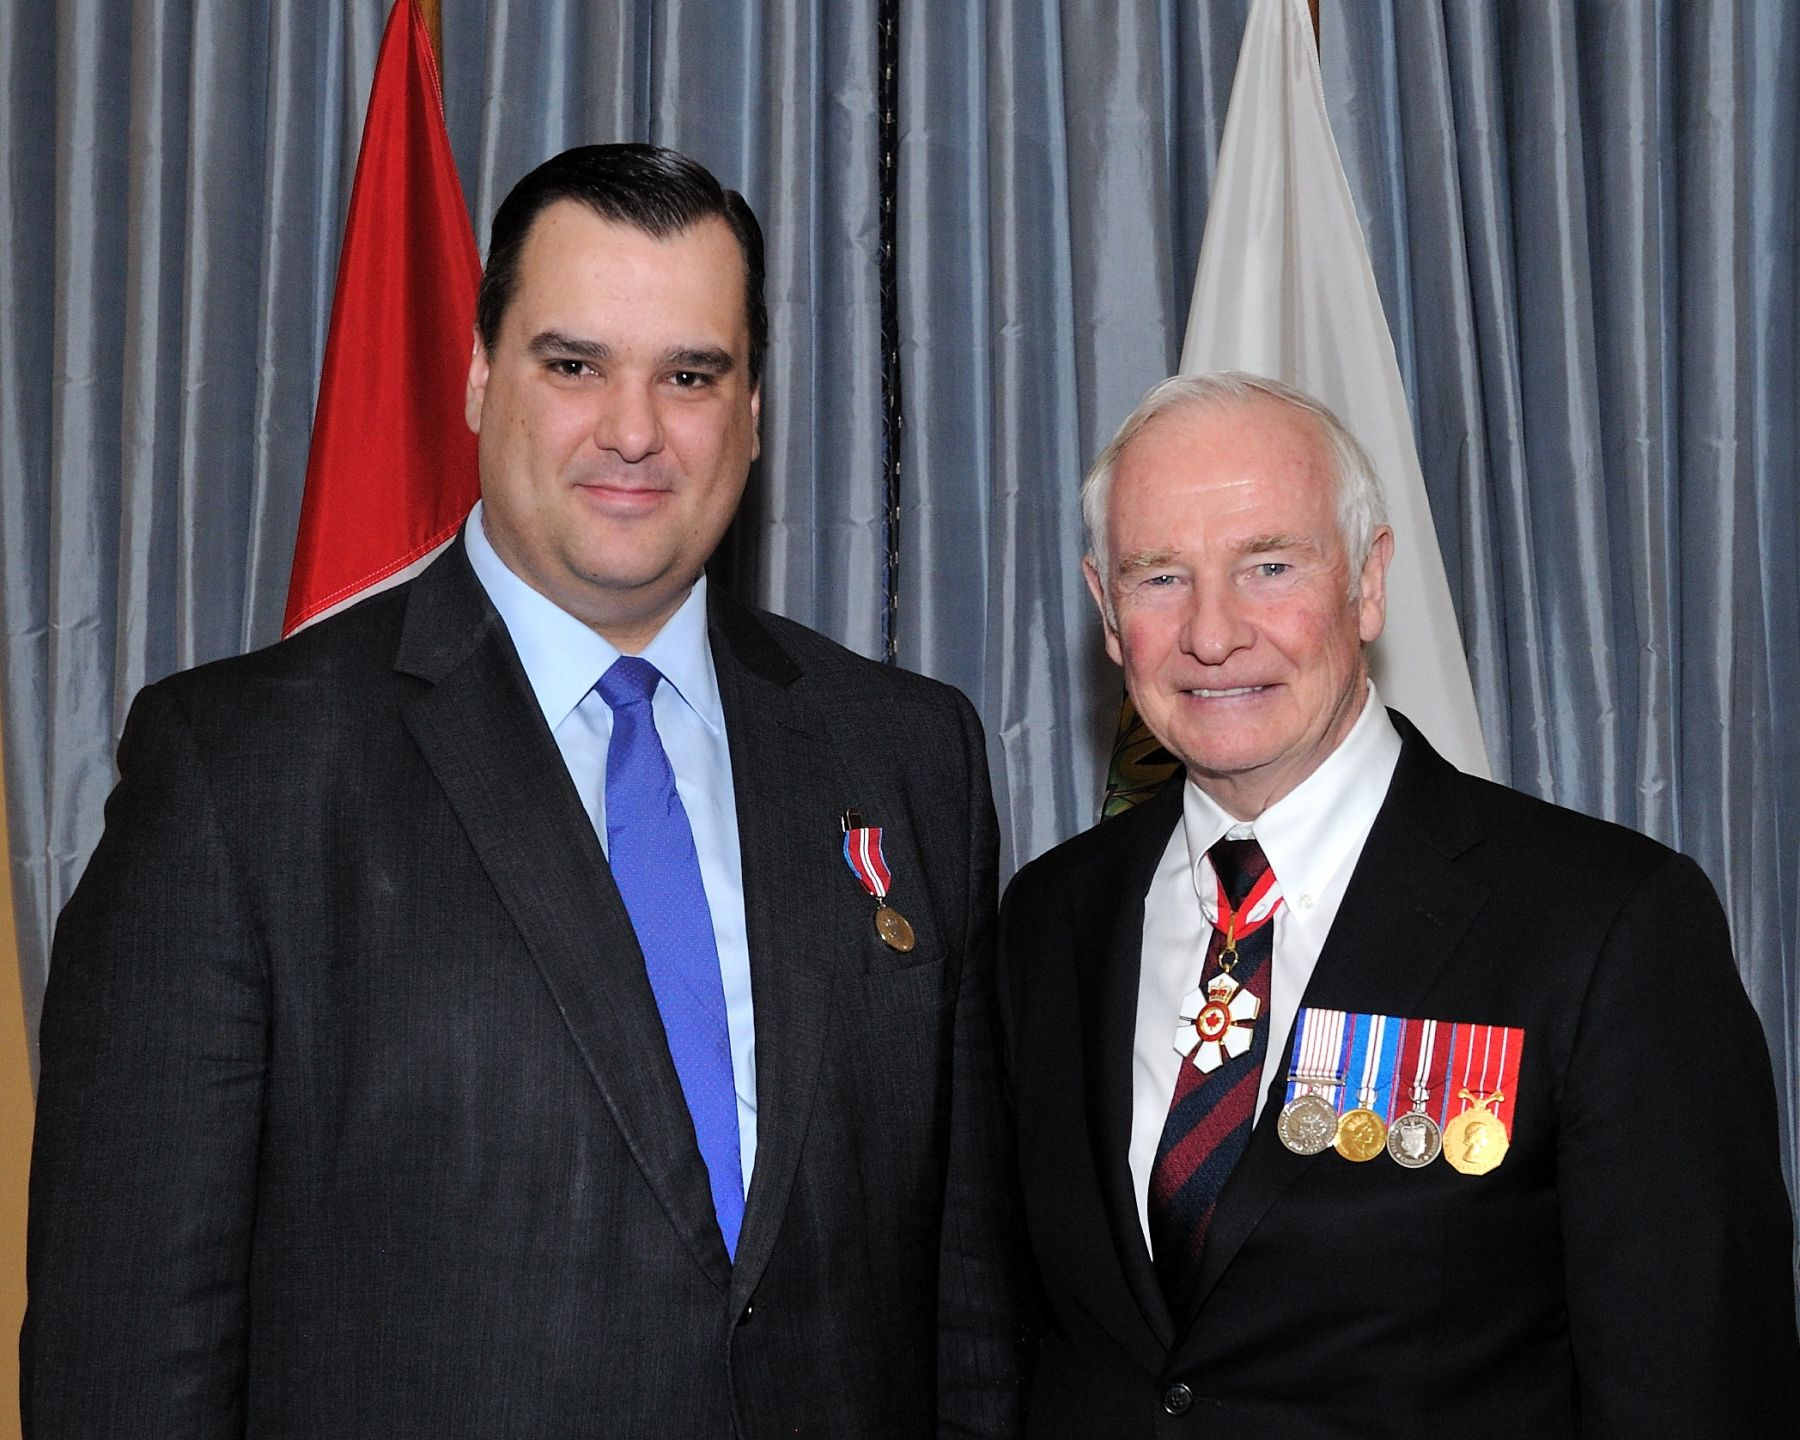 In the afternoon, the Diamond Jubilee Medal was also presented to the Honourable James Moore, Minister of Canadian Heritage and Official Languages.